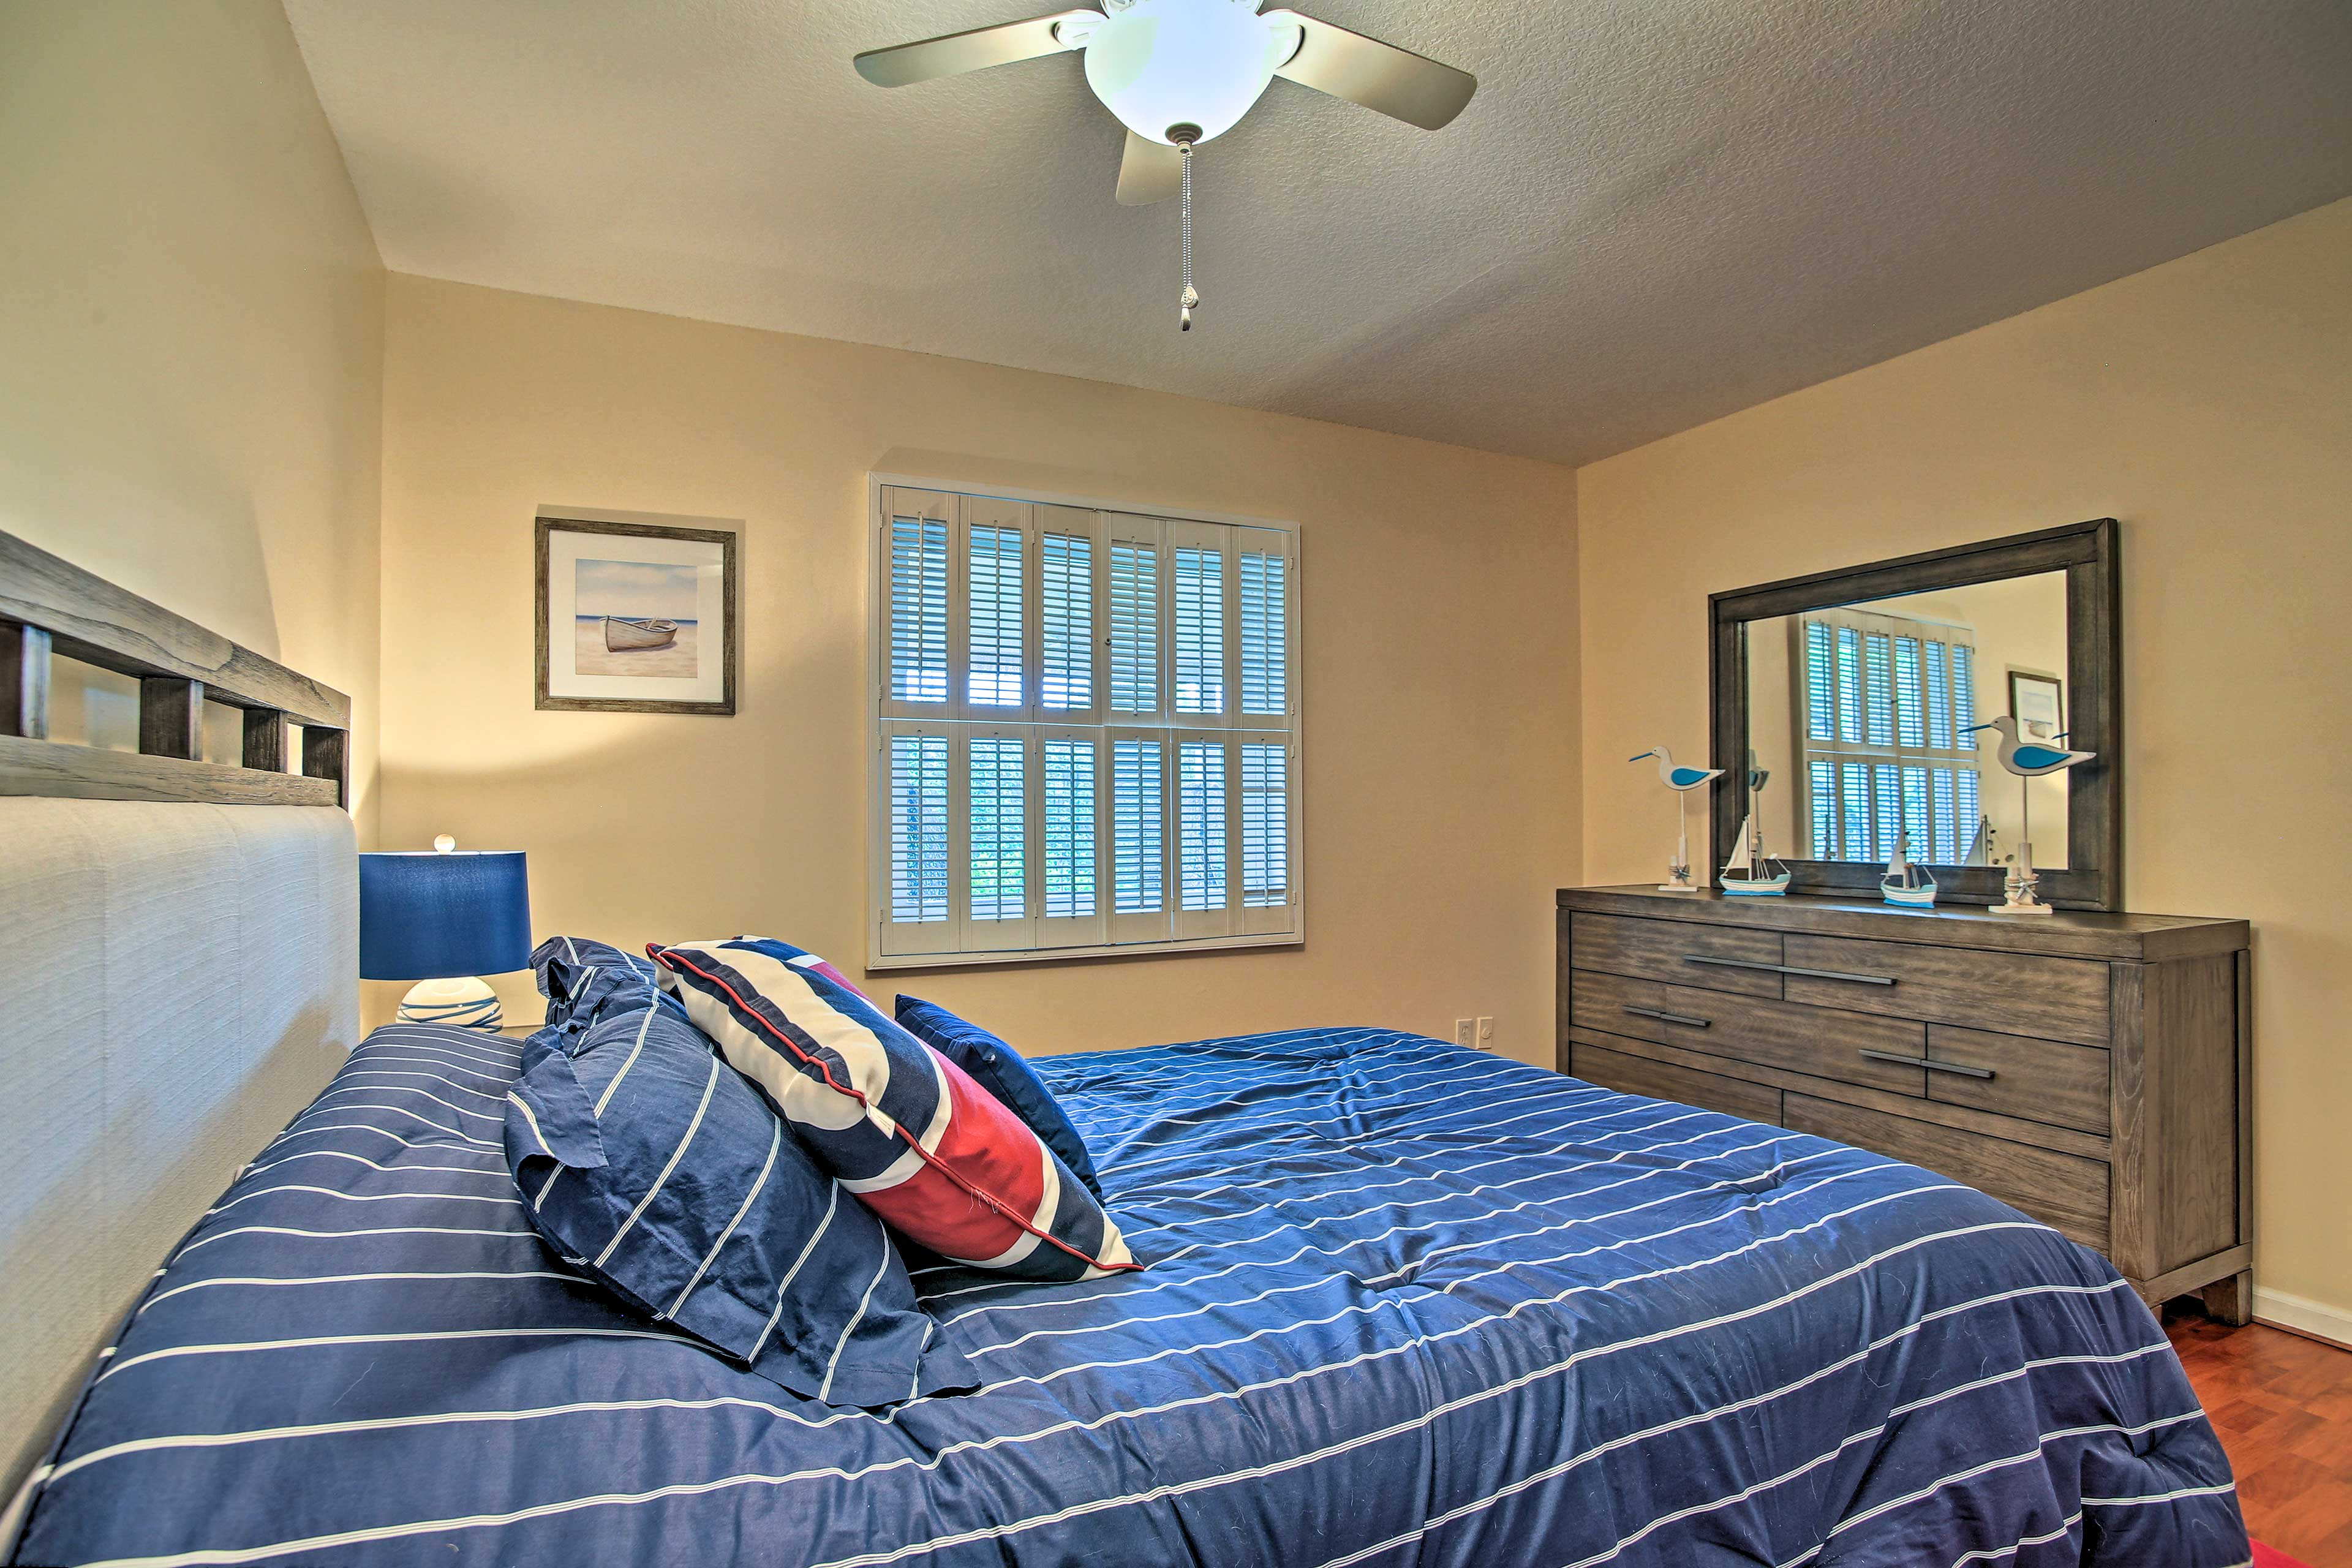 The room features a queen-sized bed.